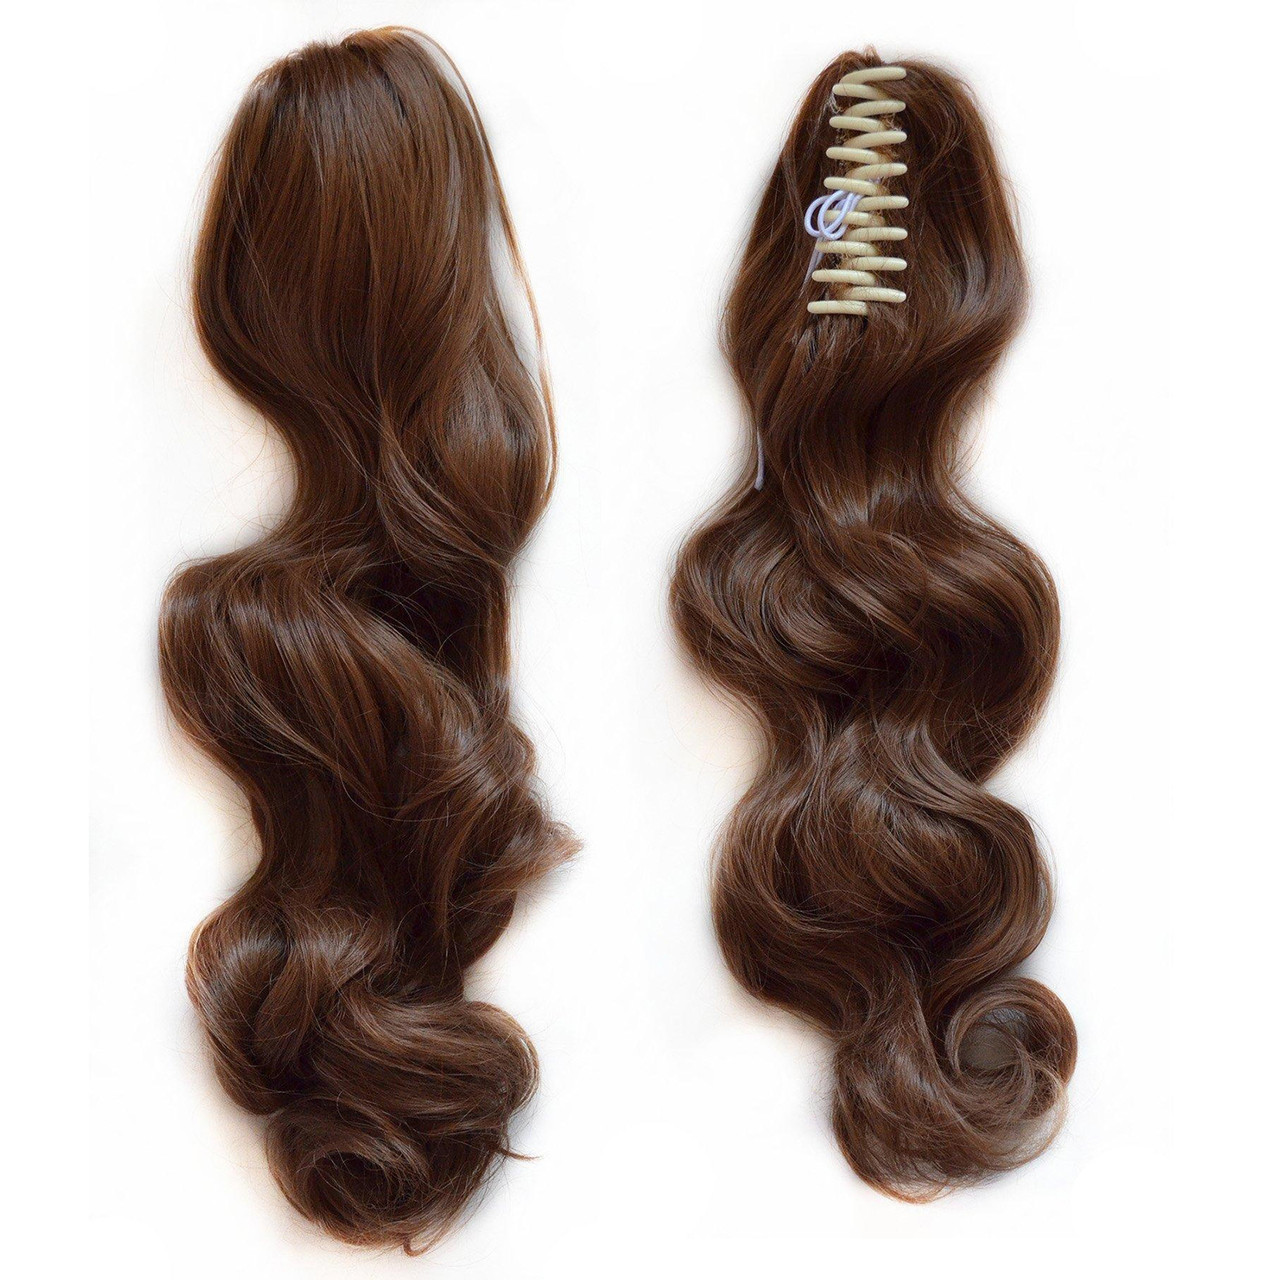 Wavy Real Human Hair Ponytails Hairpiece